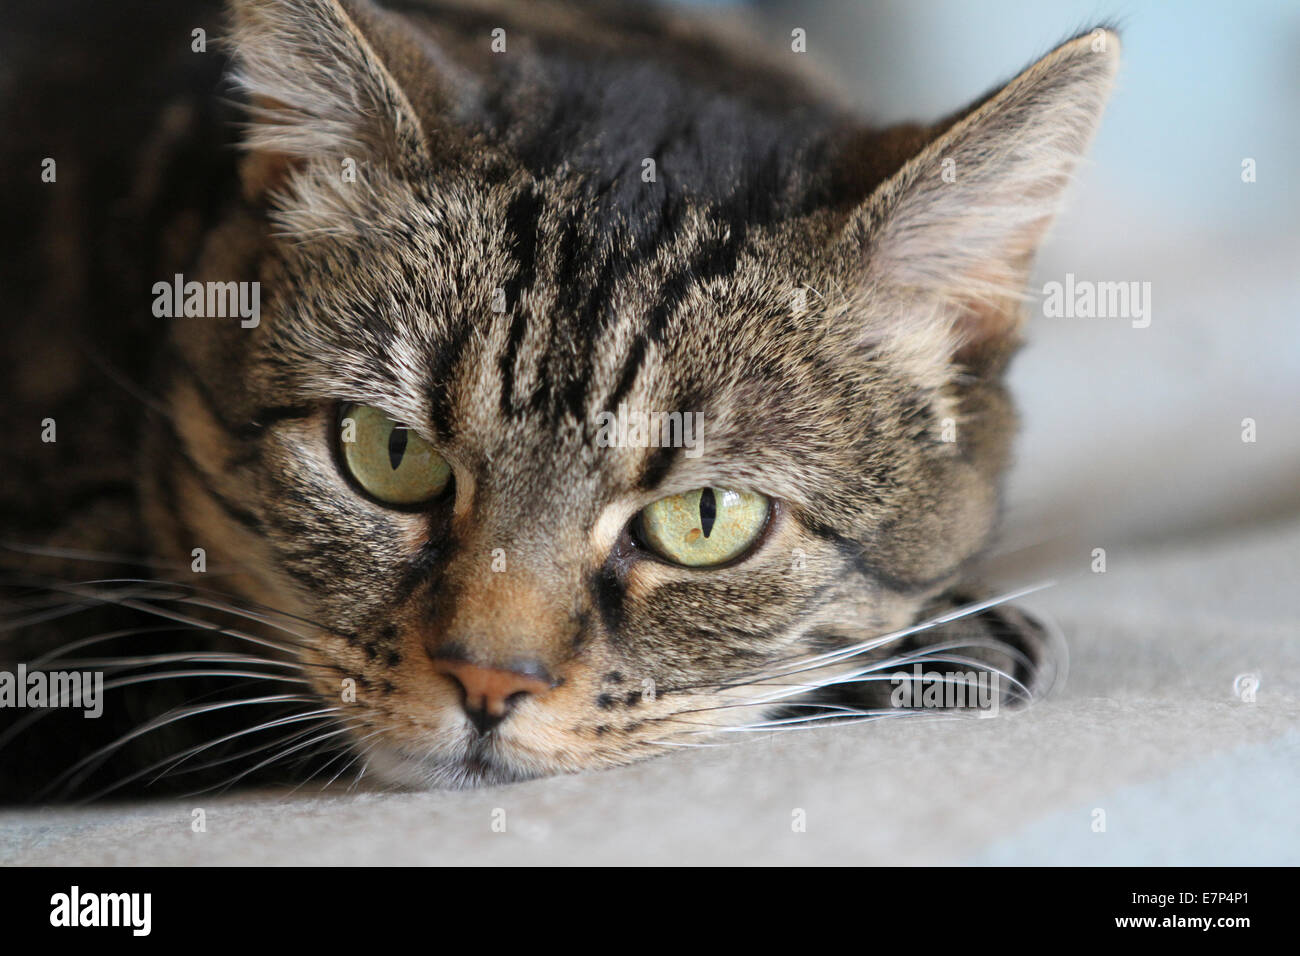 Common mackerel tabby cat close up full face, looking curiously at the viewer - Stock Image